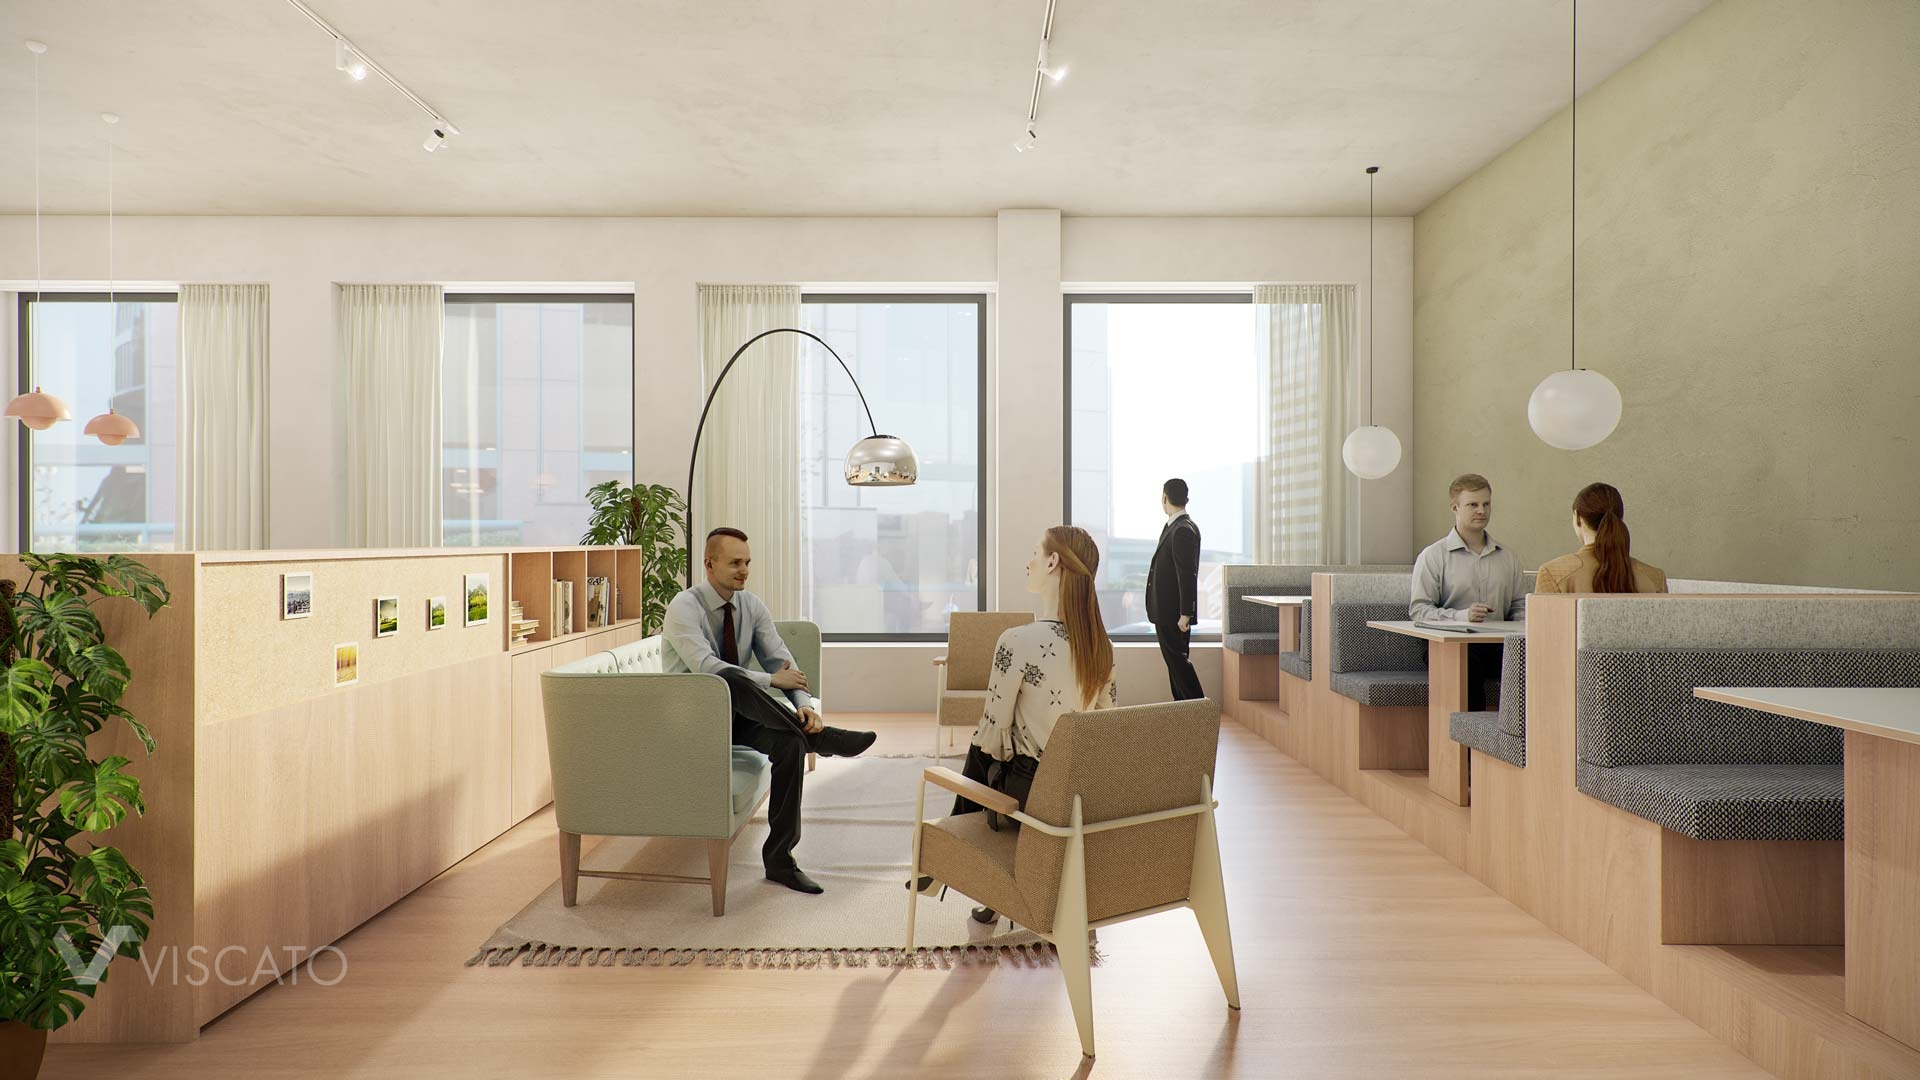 Office interiors in natural colours, viscato